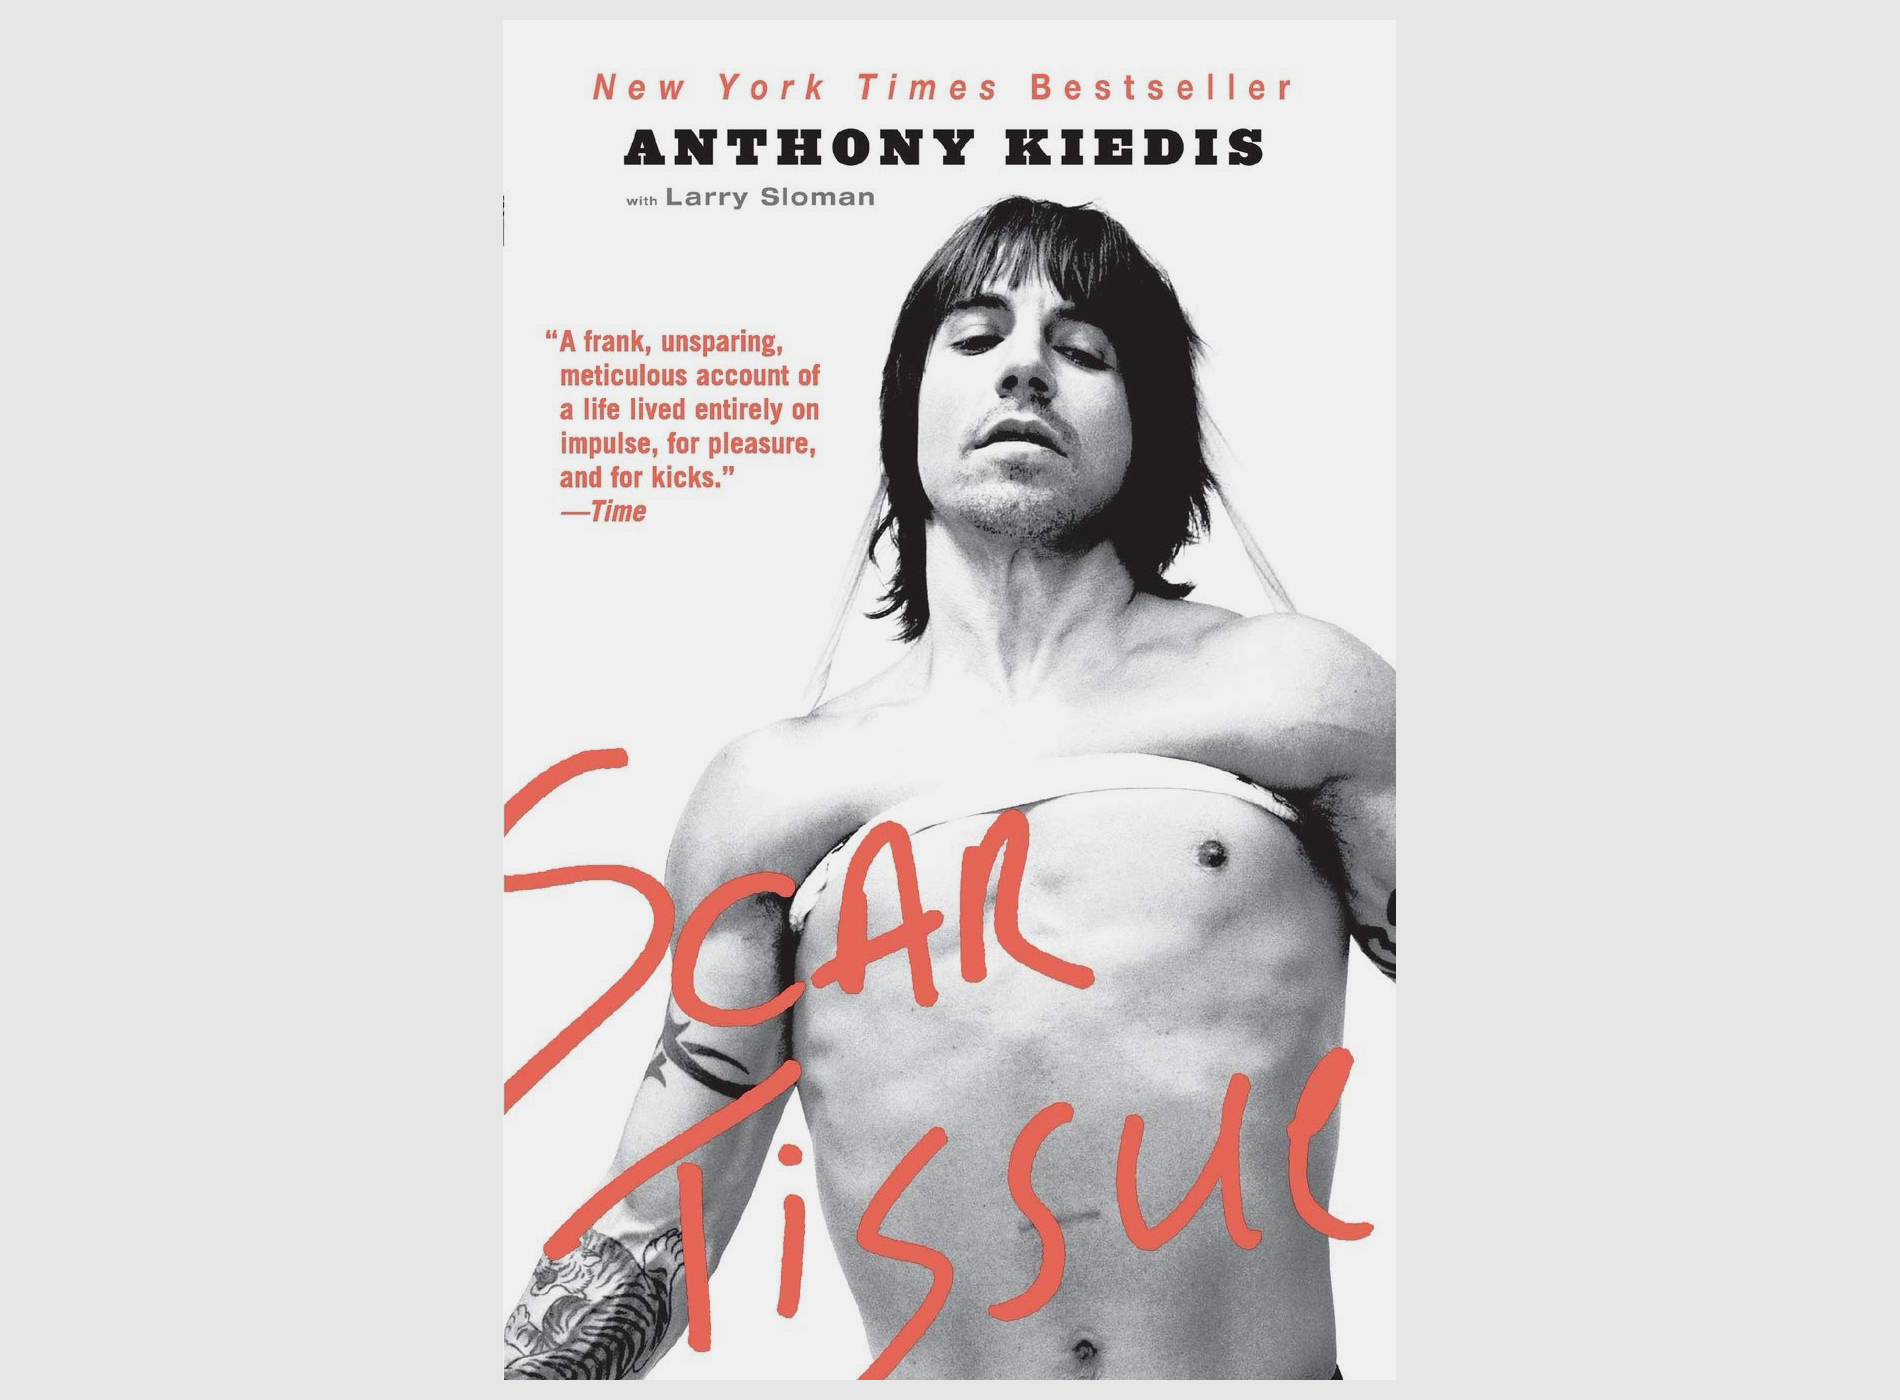 """The book cover of """"Scar Tissue,"""" the autobiography by Red Hot Chili Peppers singer Anthony Kiedis"""